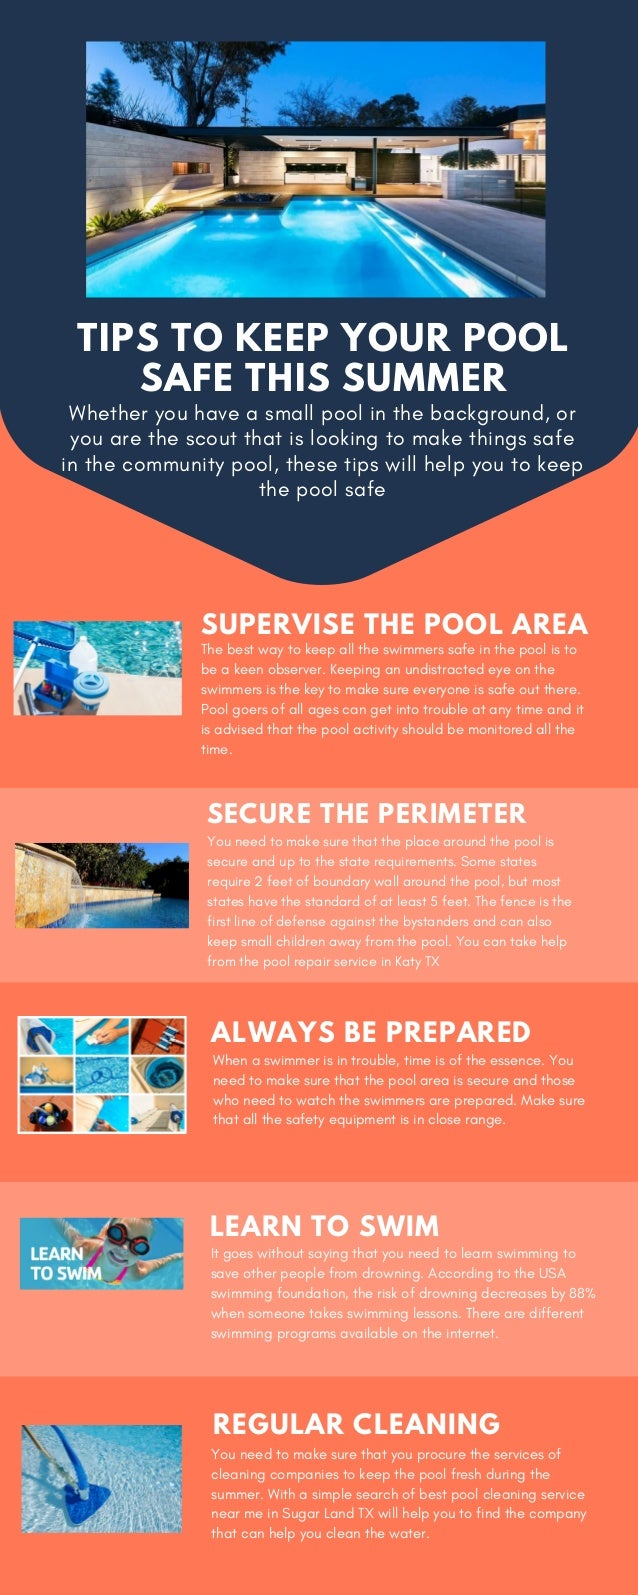 Tips to keep your pool safe this summer